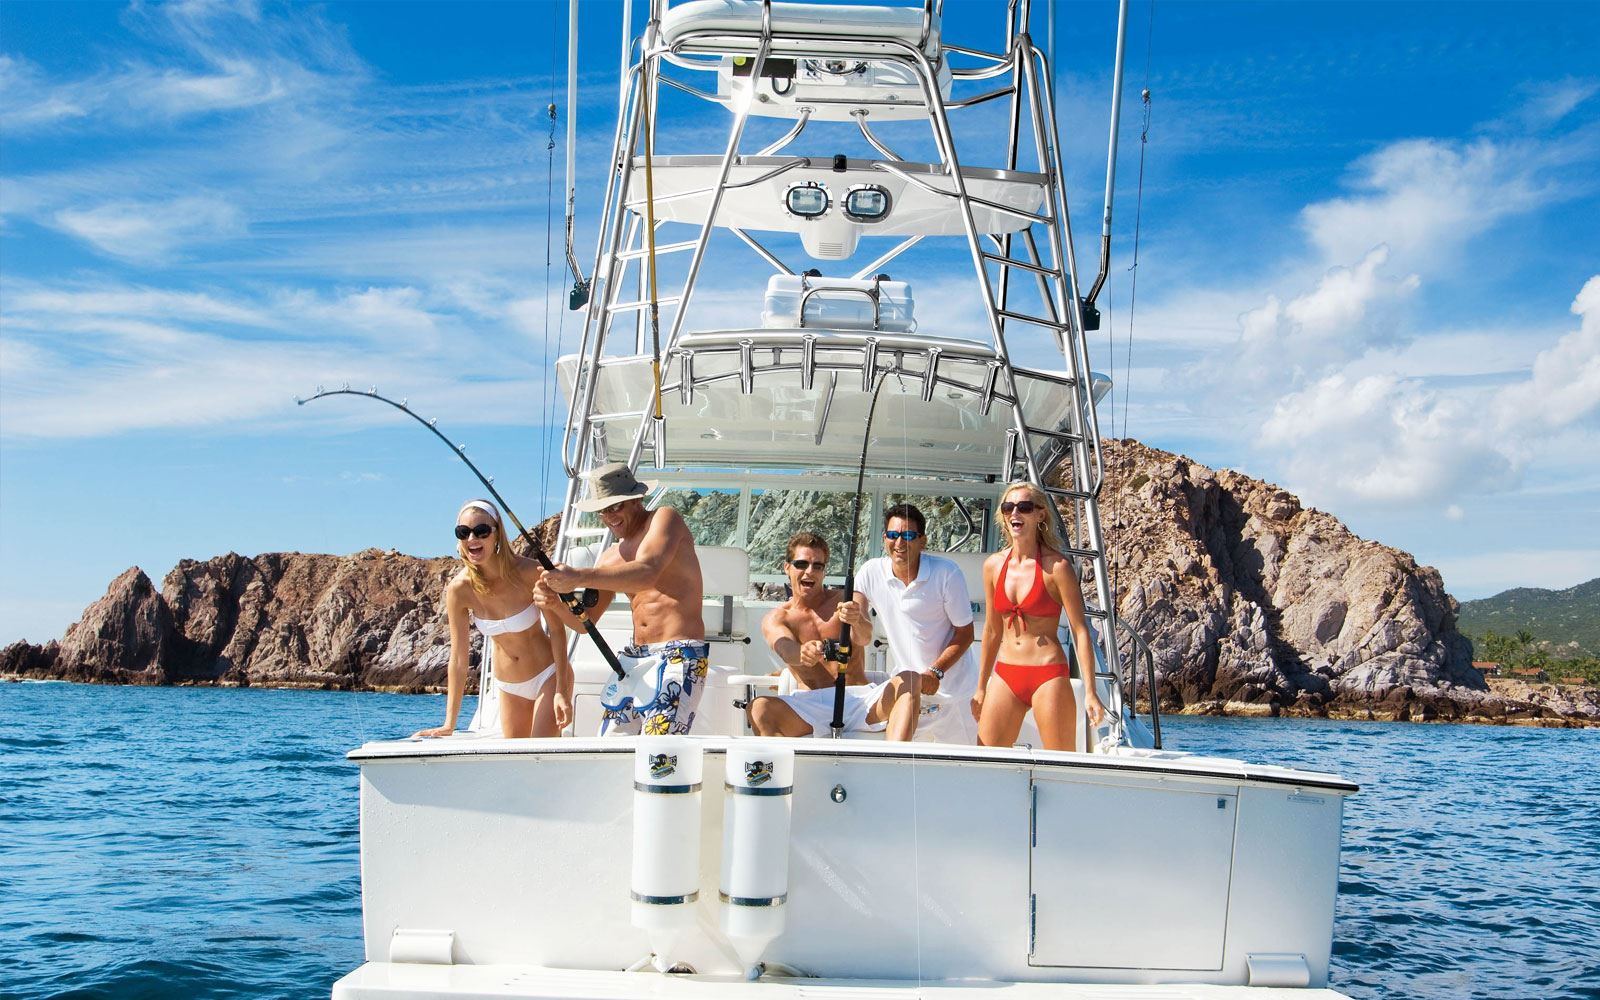 Grand solmar timeshare a luxury cabo san lucas resort for Cabo fishing seasons